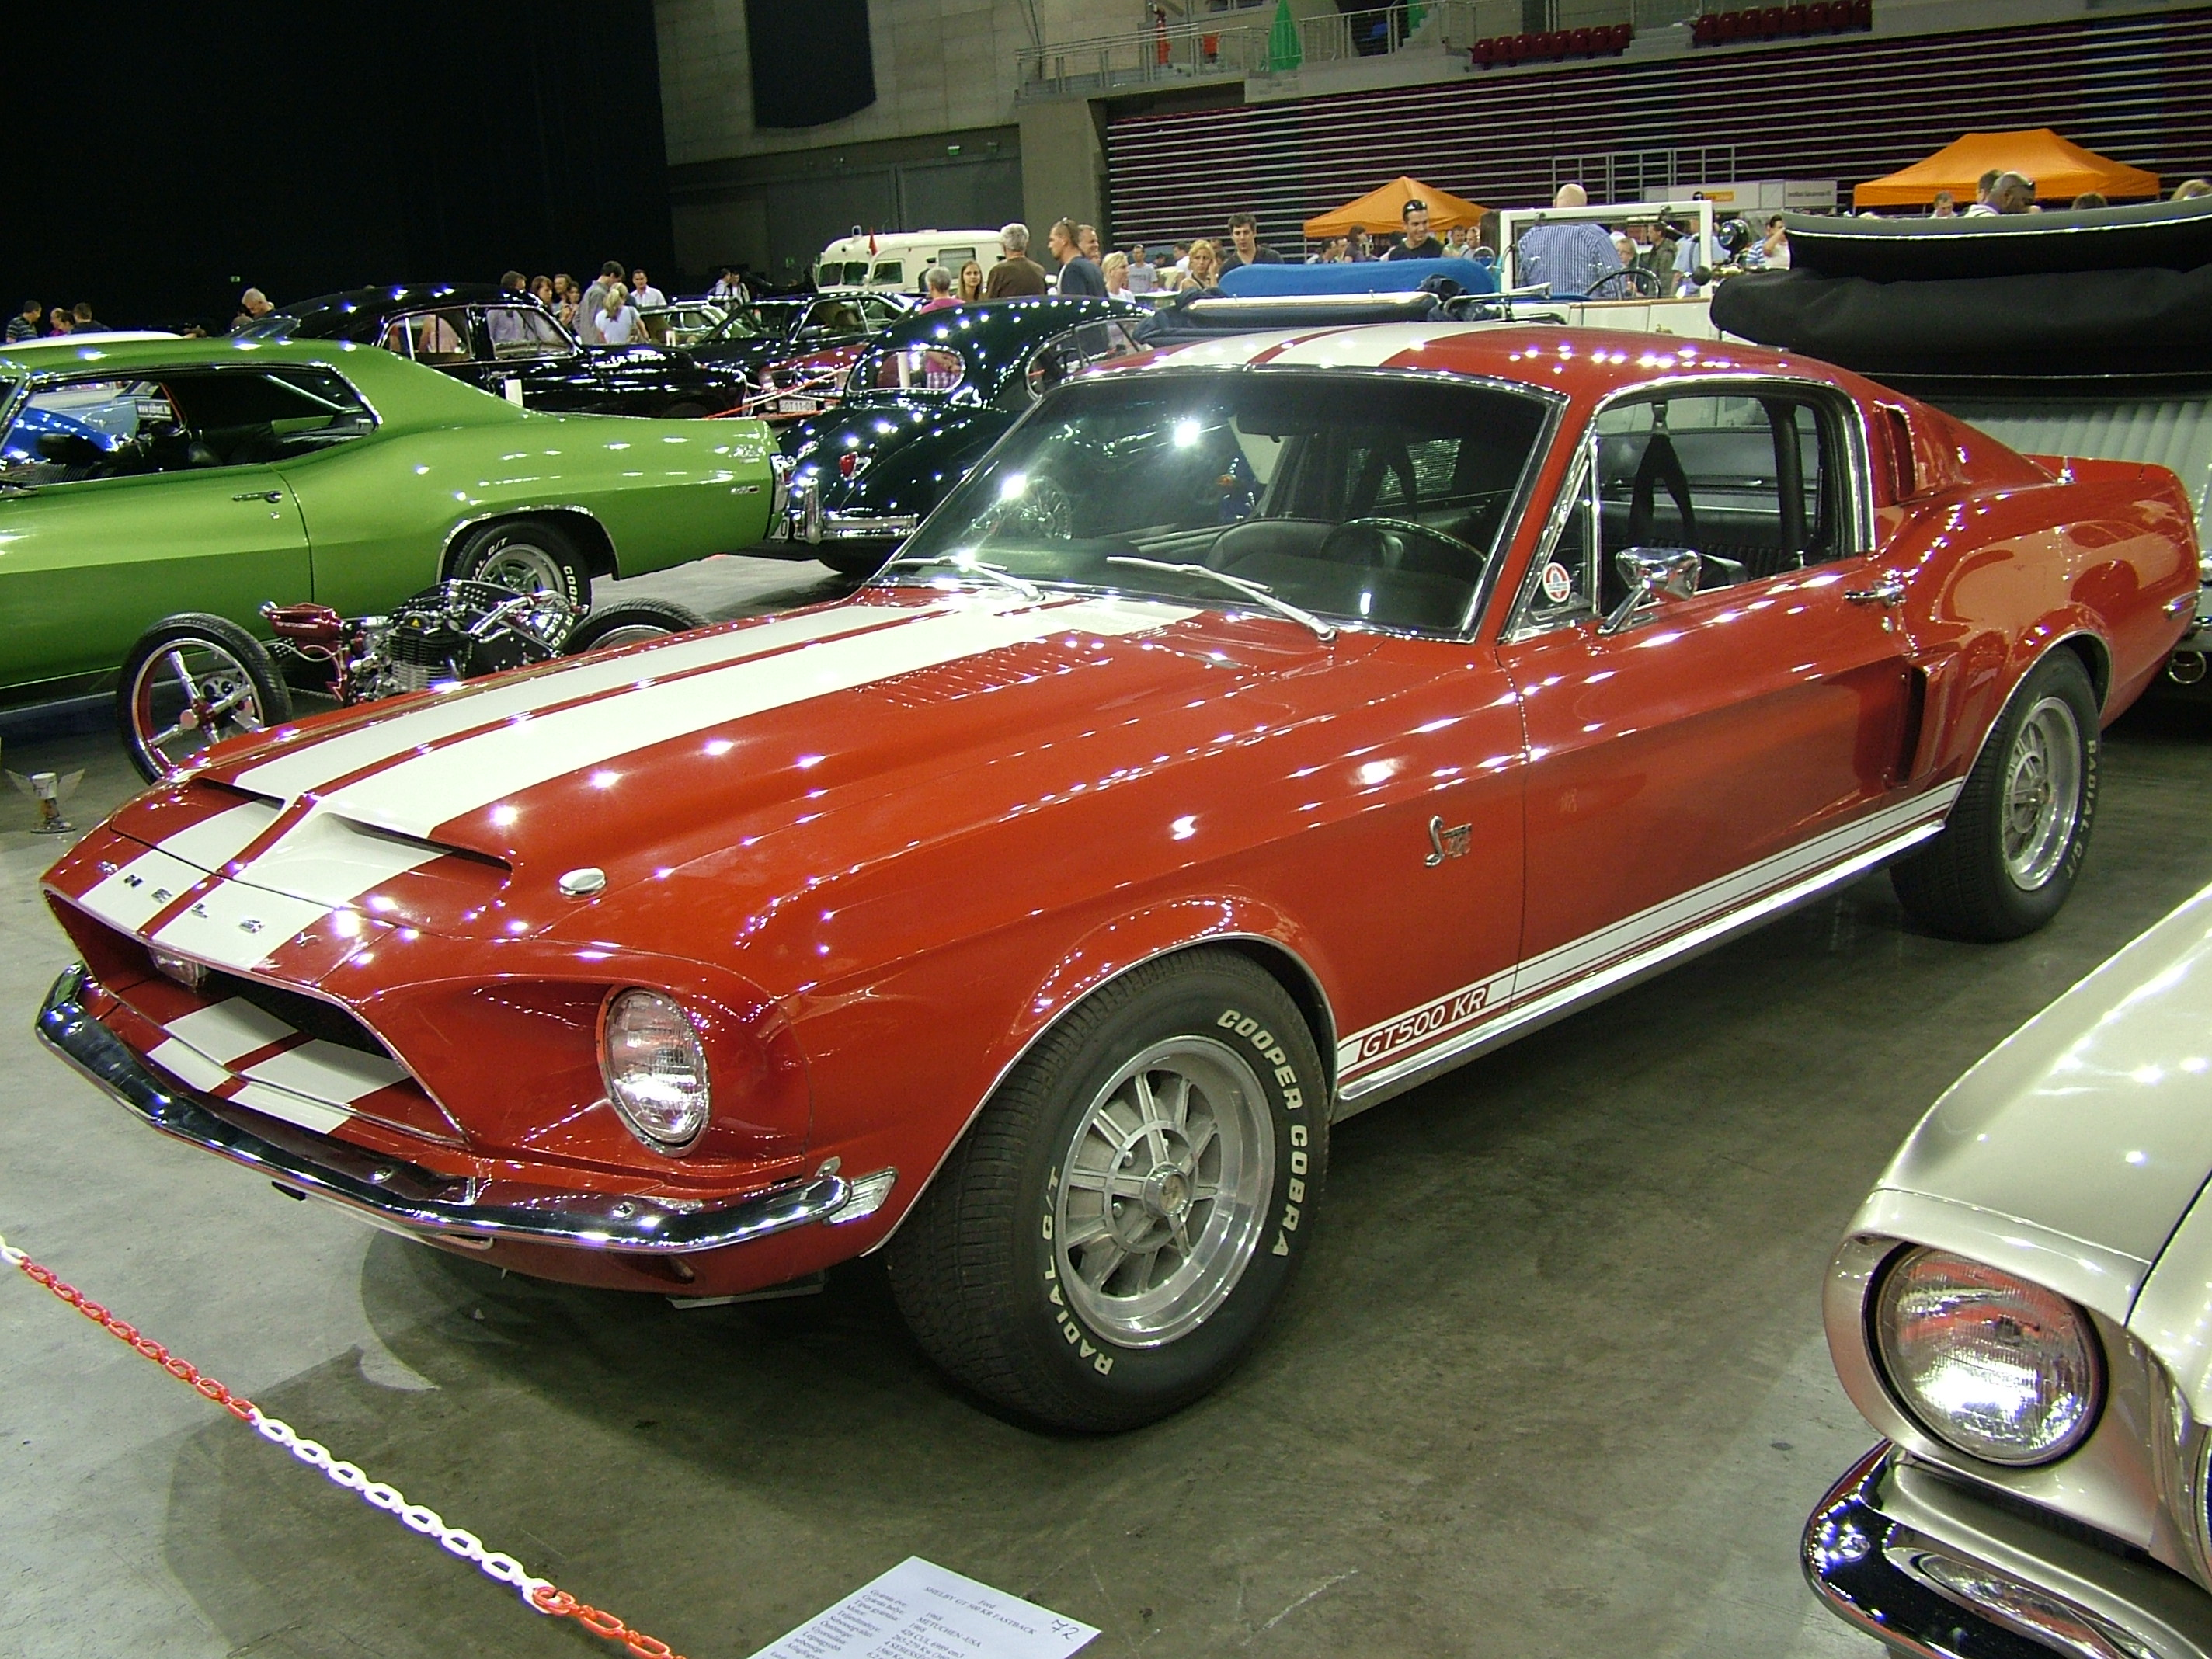 File:Ford Mustang Shelby GT500 KR Fastback, 1968 - Flickr ...